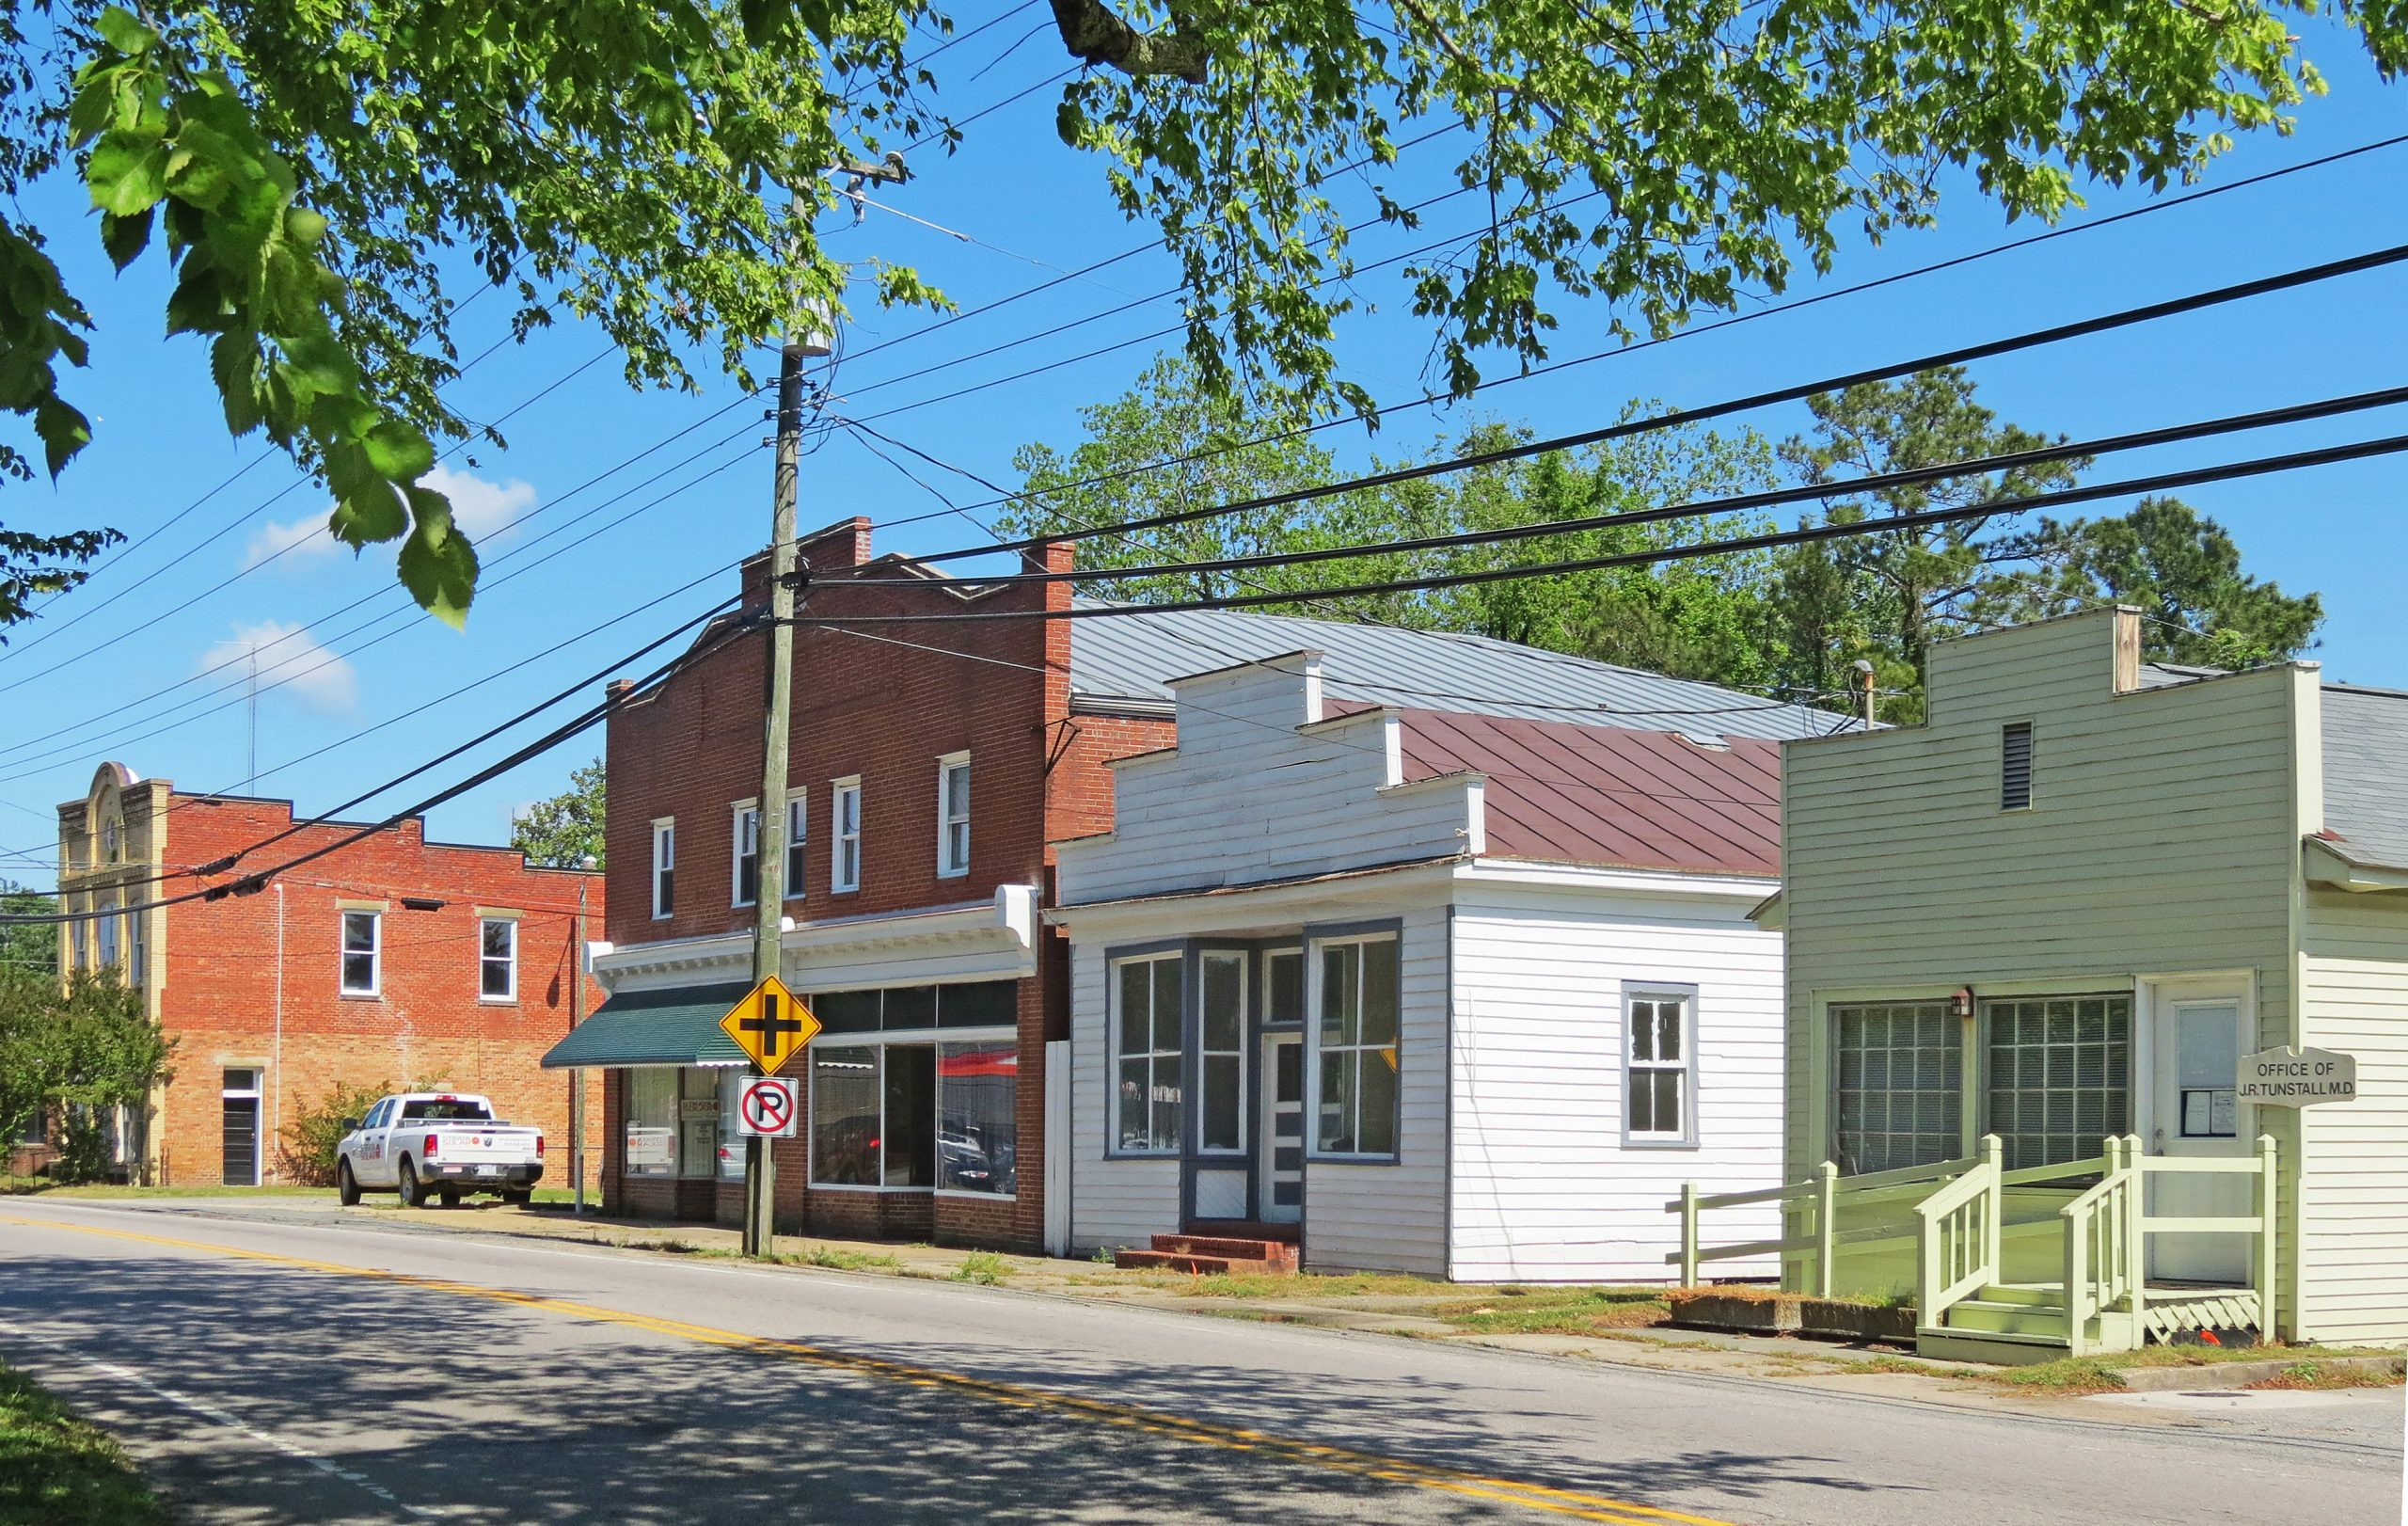 Town of Surry Historic District